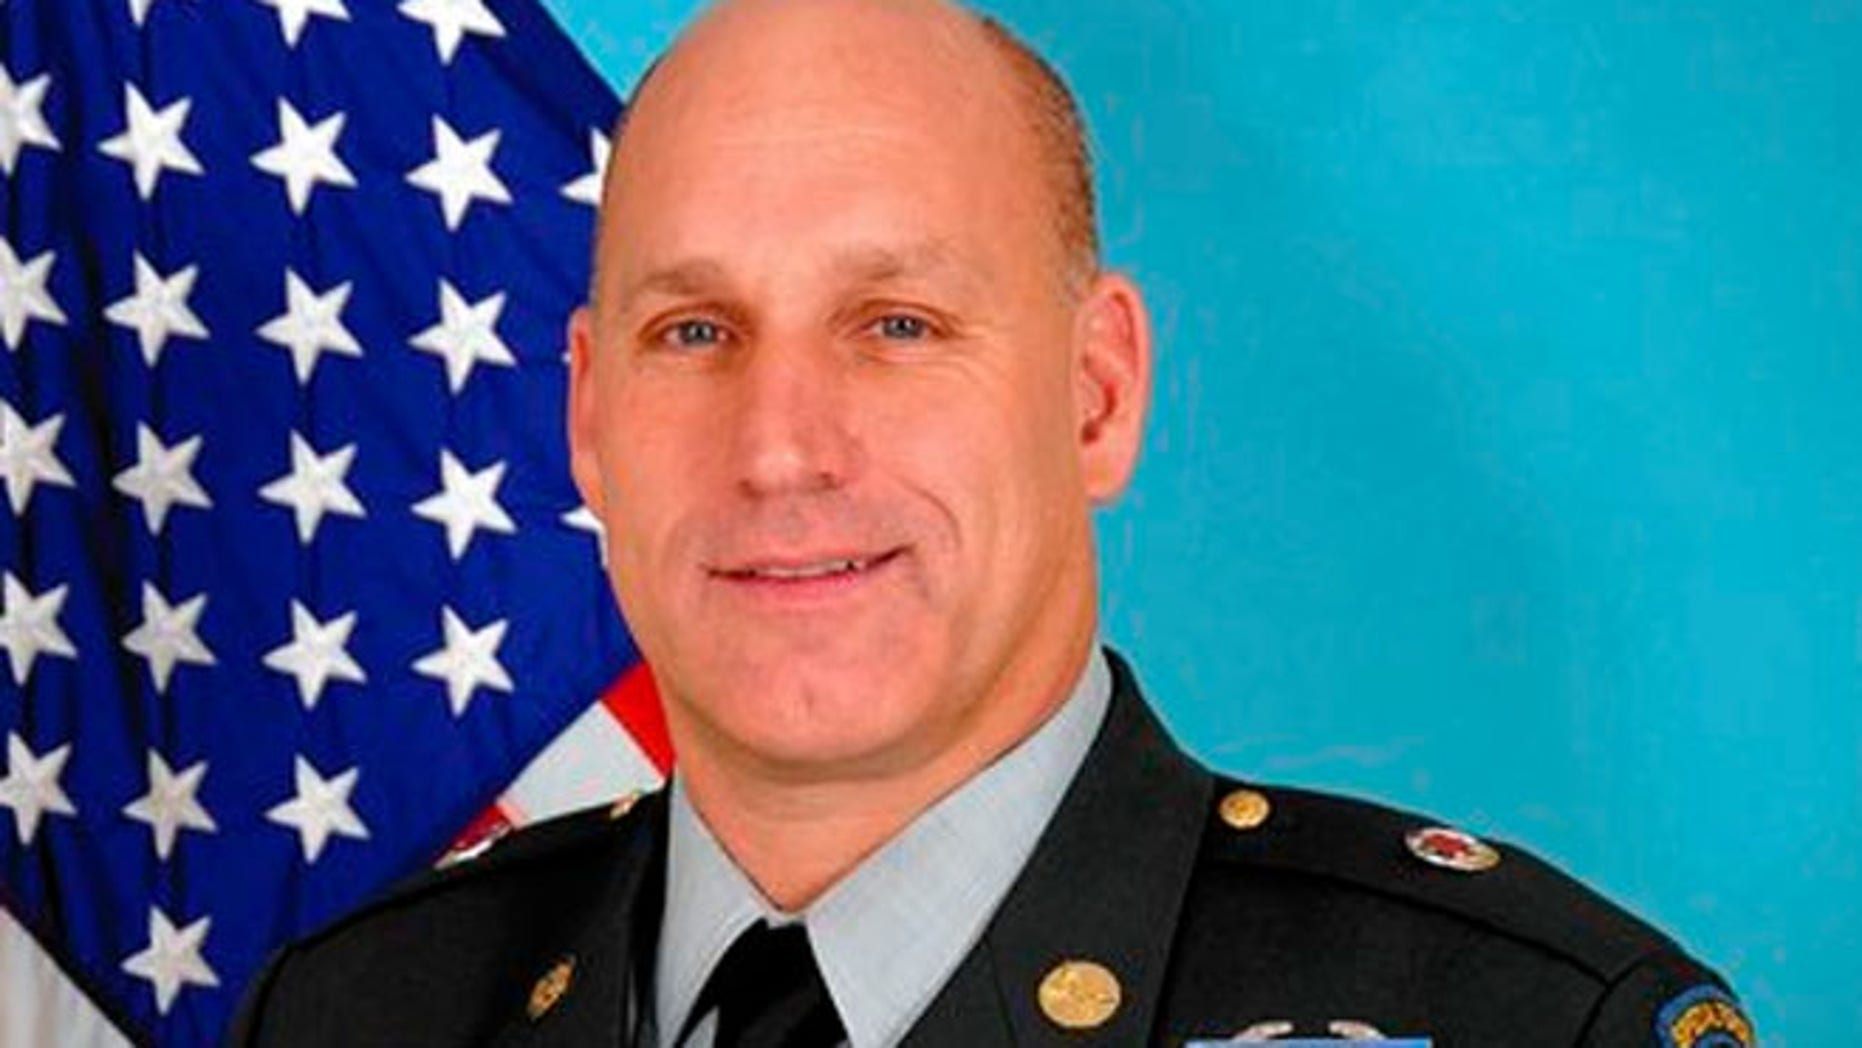 Sgt. Maj. Richard Erickson, 50, says he was fired from the U.S. Postal Service for taking too much time to serve his country.